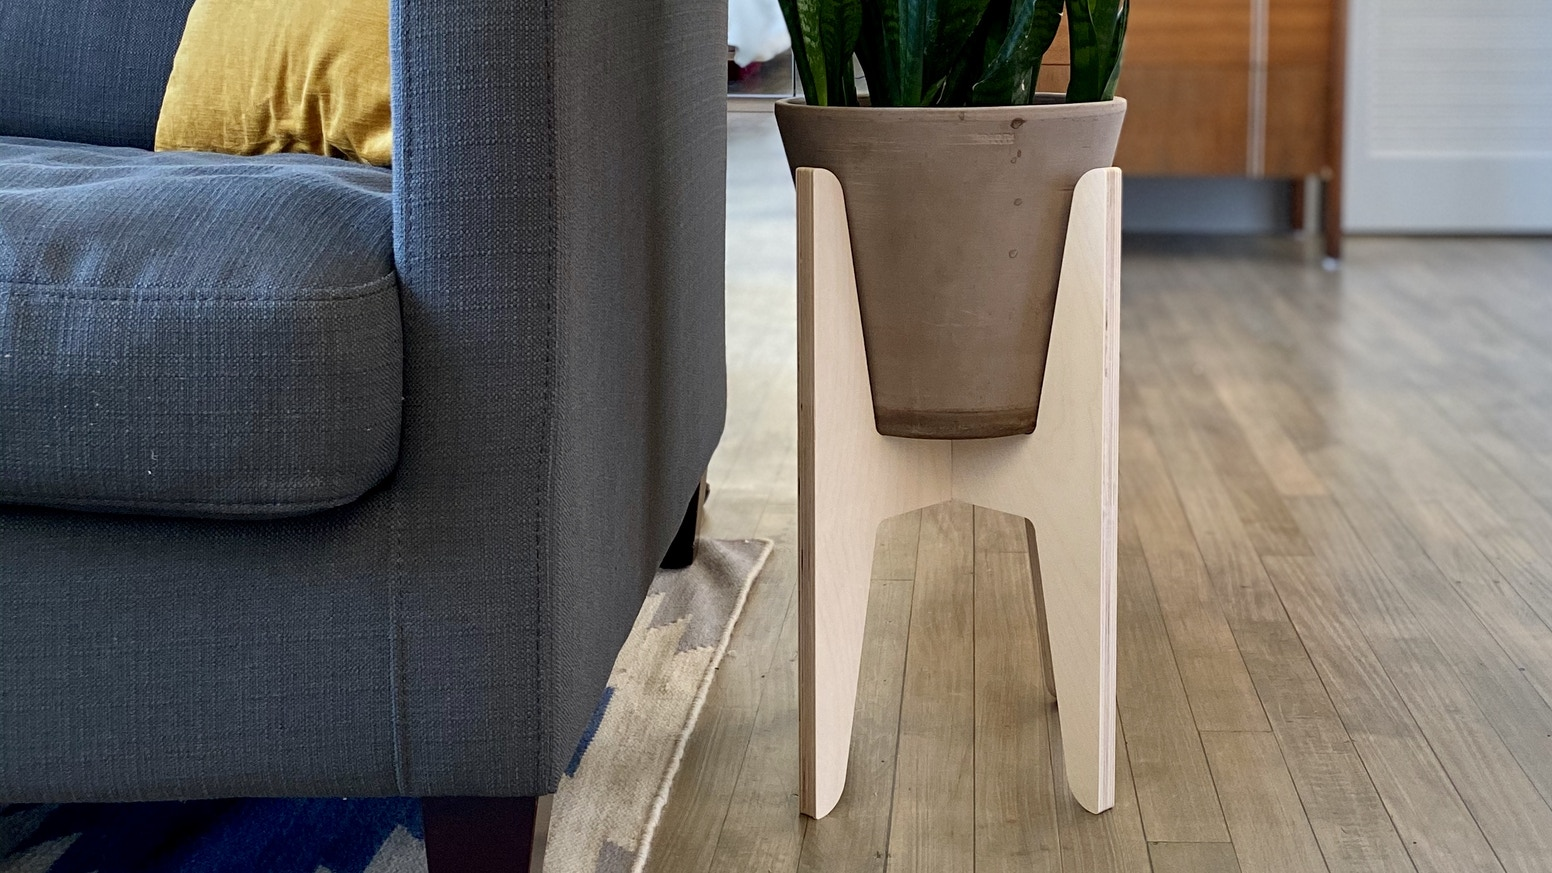 Pamper your plants with Pedestal, an adjustable plant stand and side table.